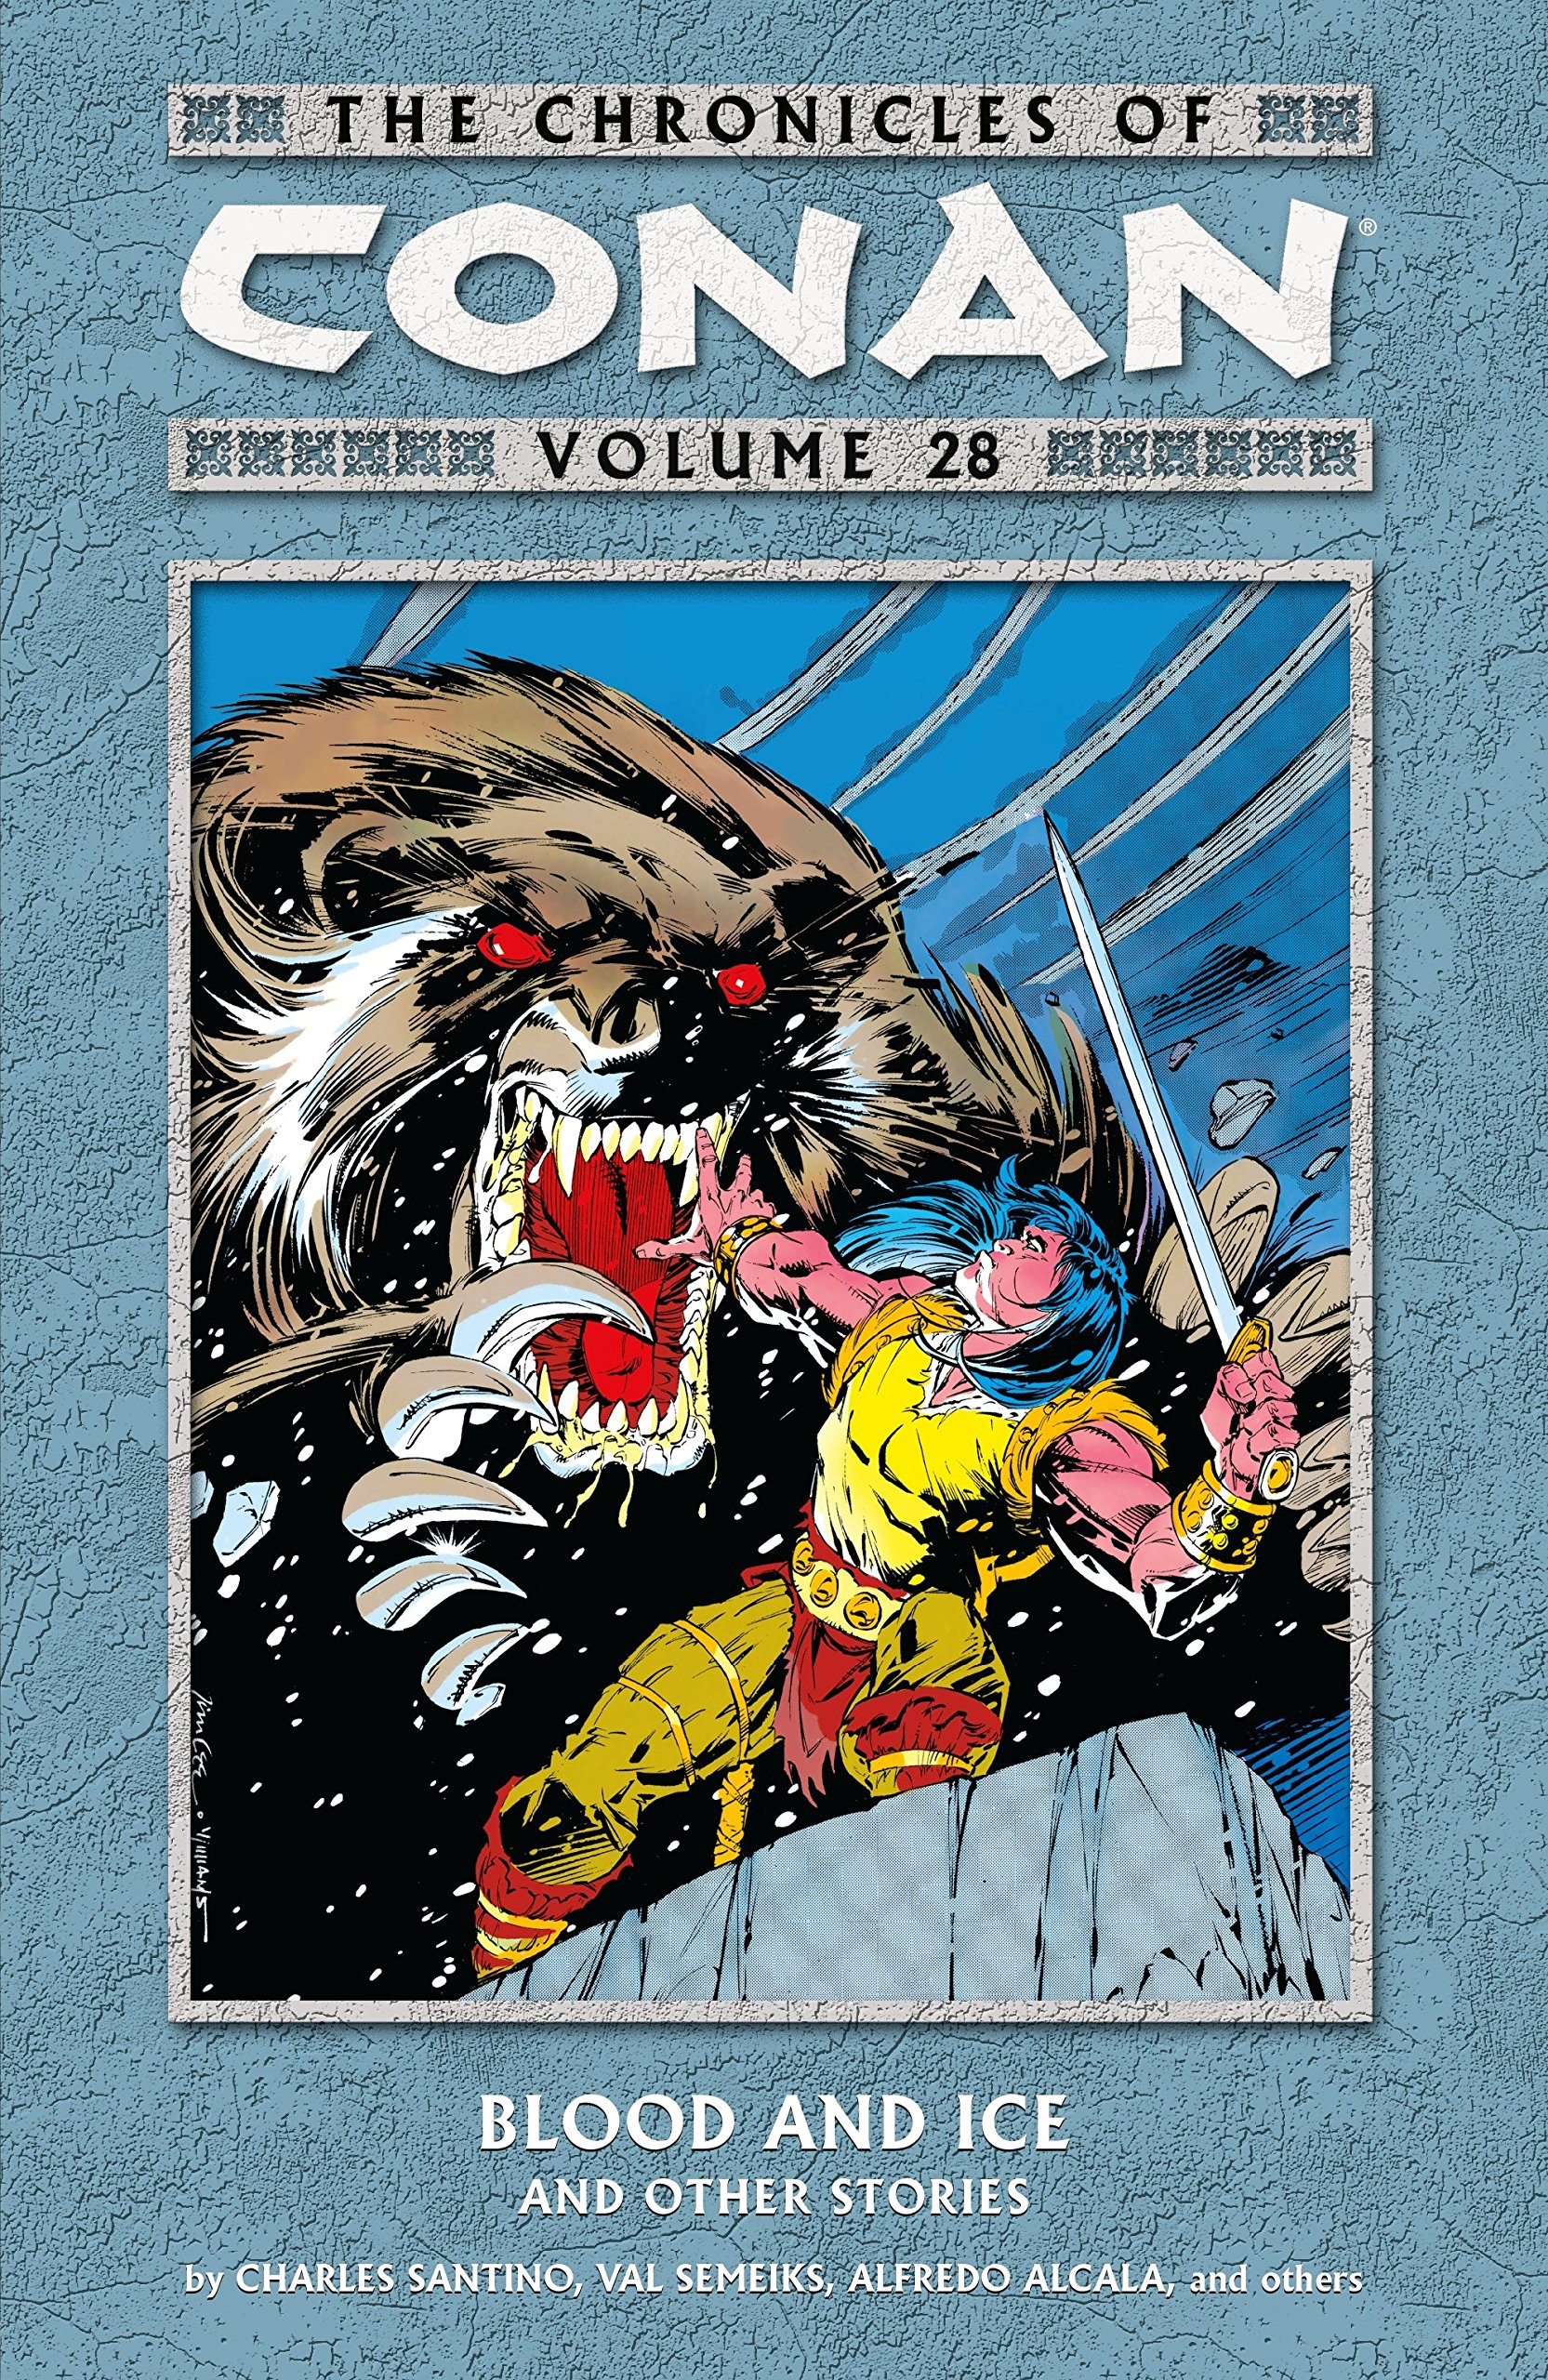 Download The Chronicles of Conan Volume 28: Blood and Ice and Other Stories ebook